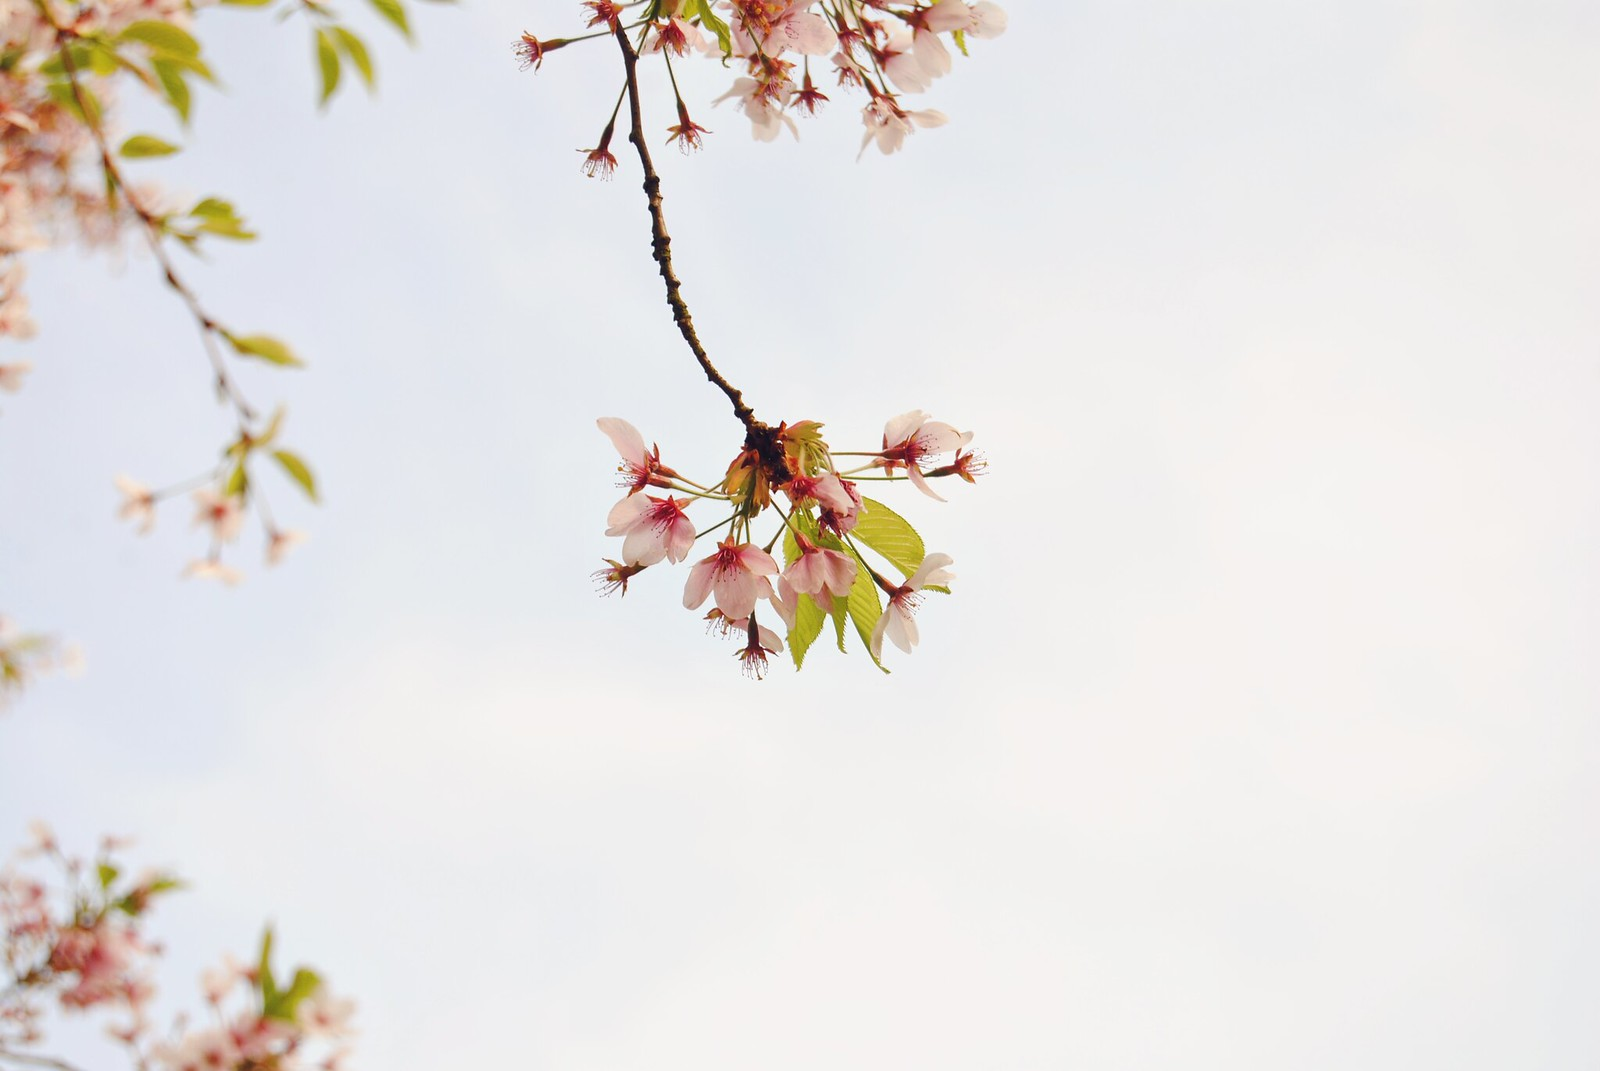 A close up of the cherry blossoms in Amsterdam